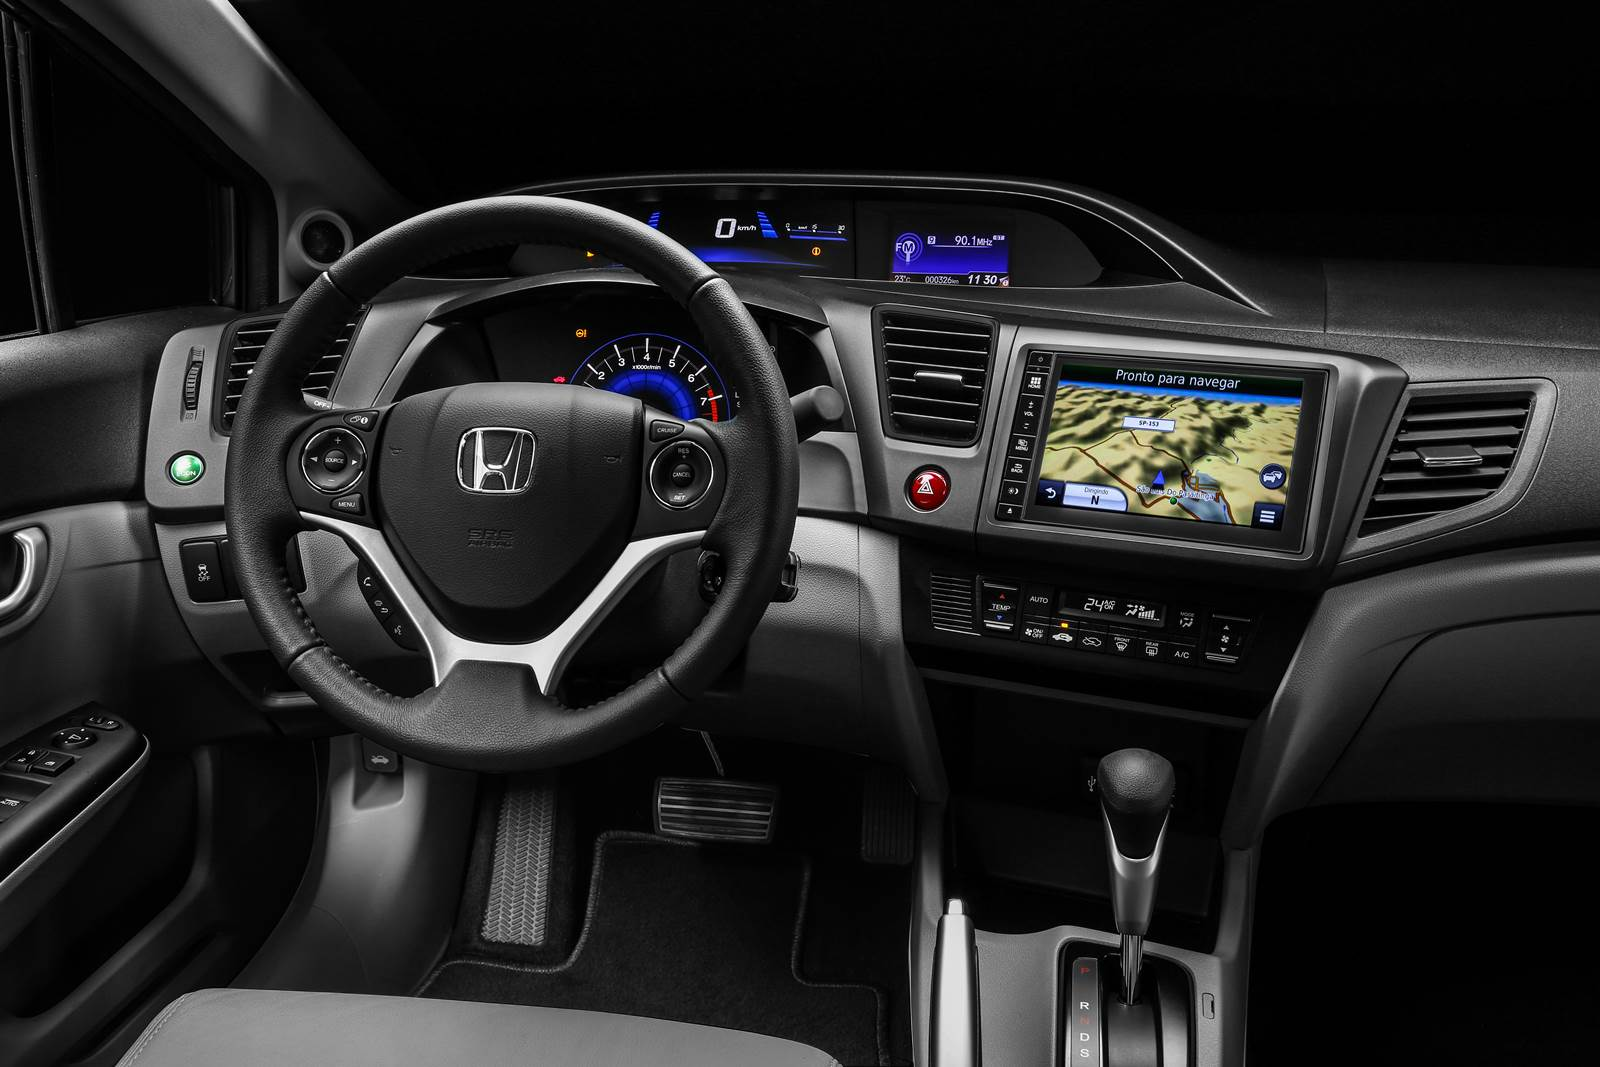 Honda Civic EXR 2016 - interior